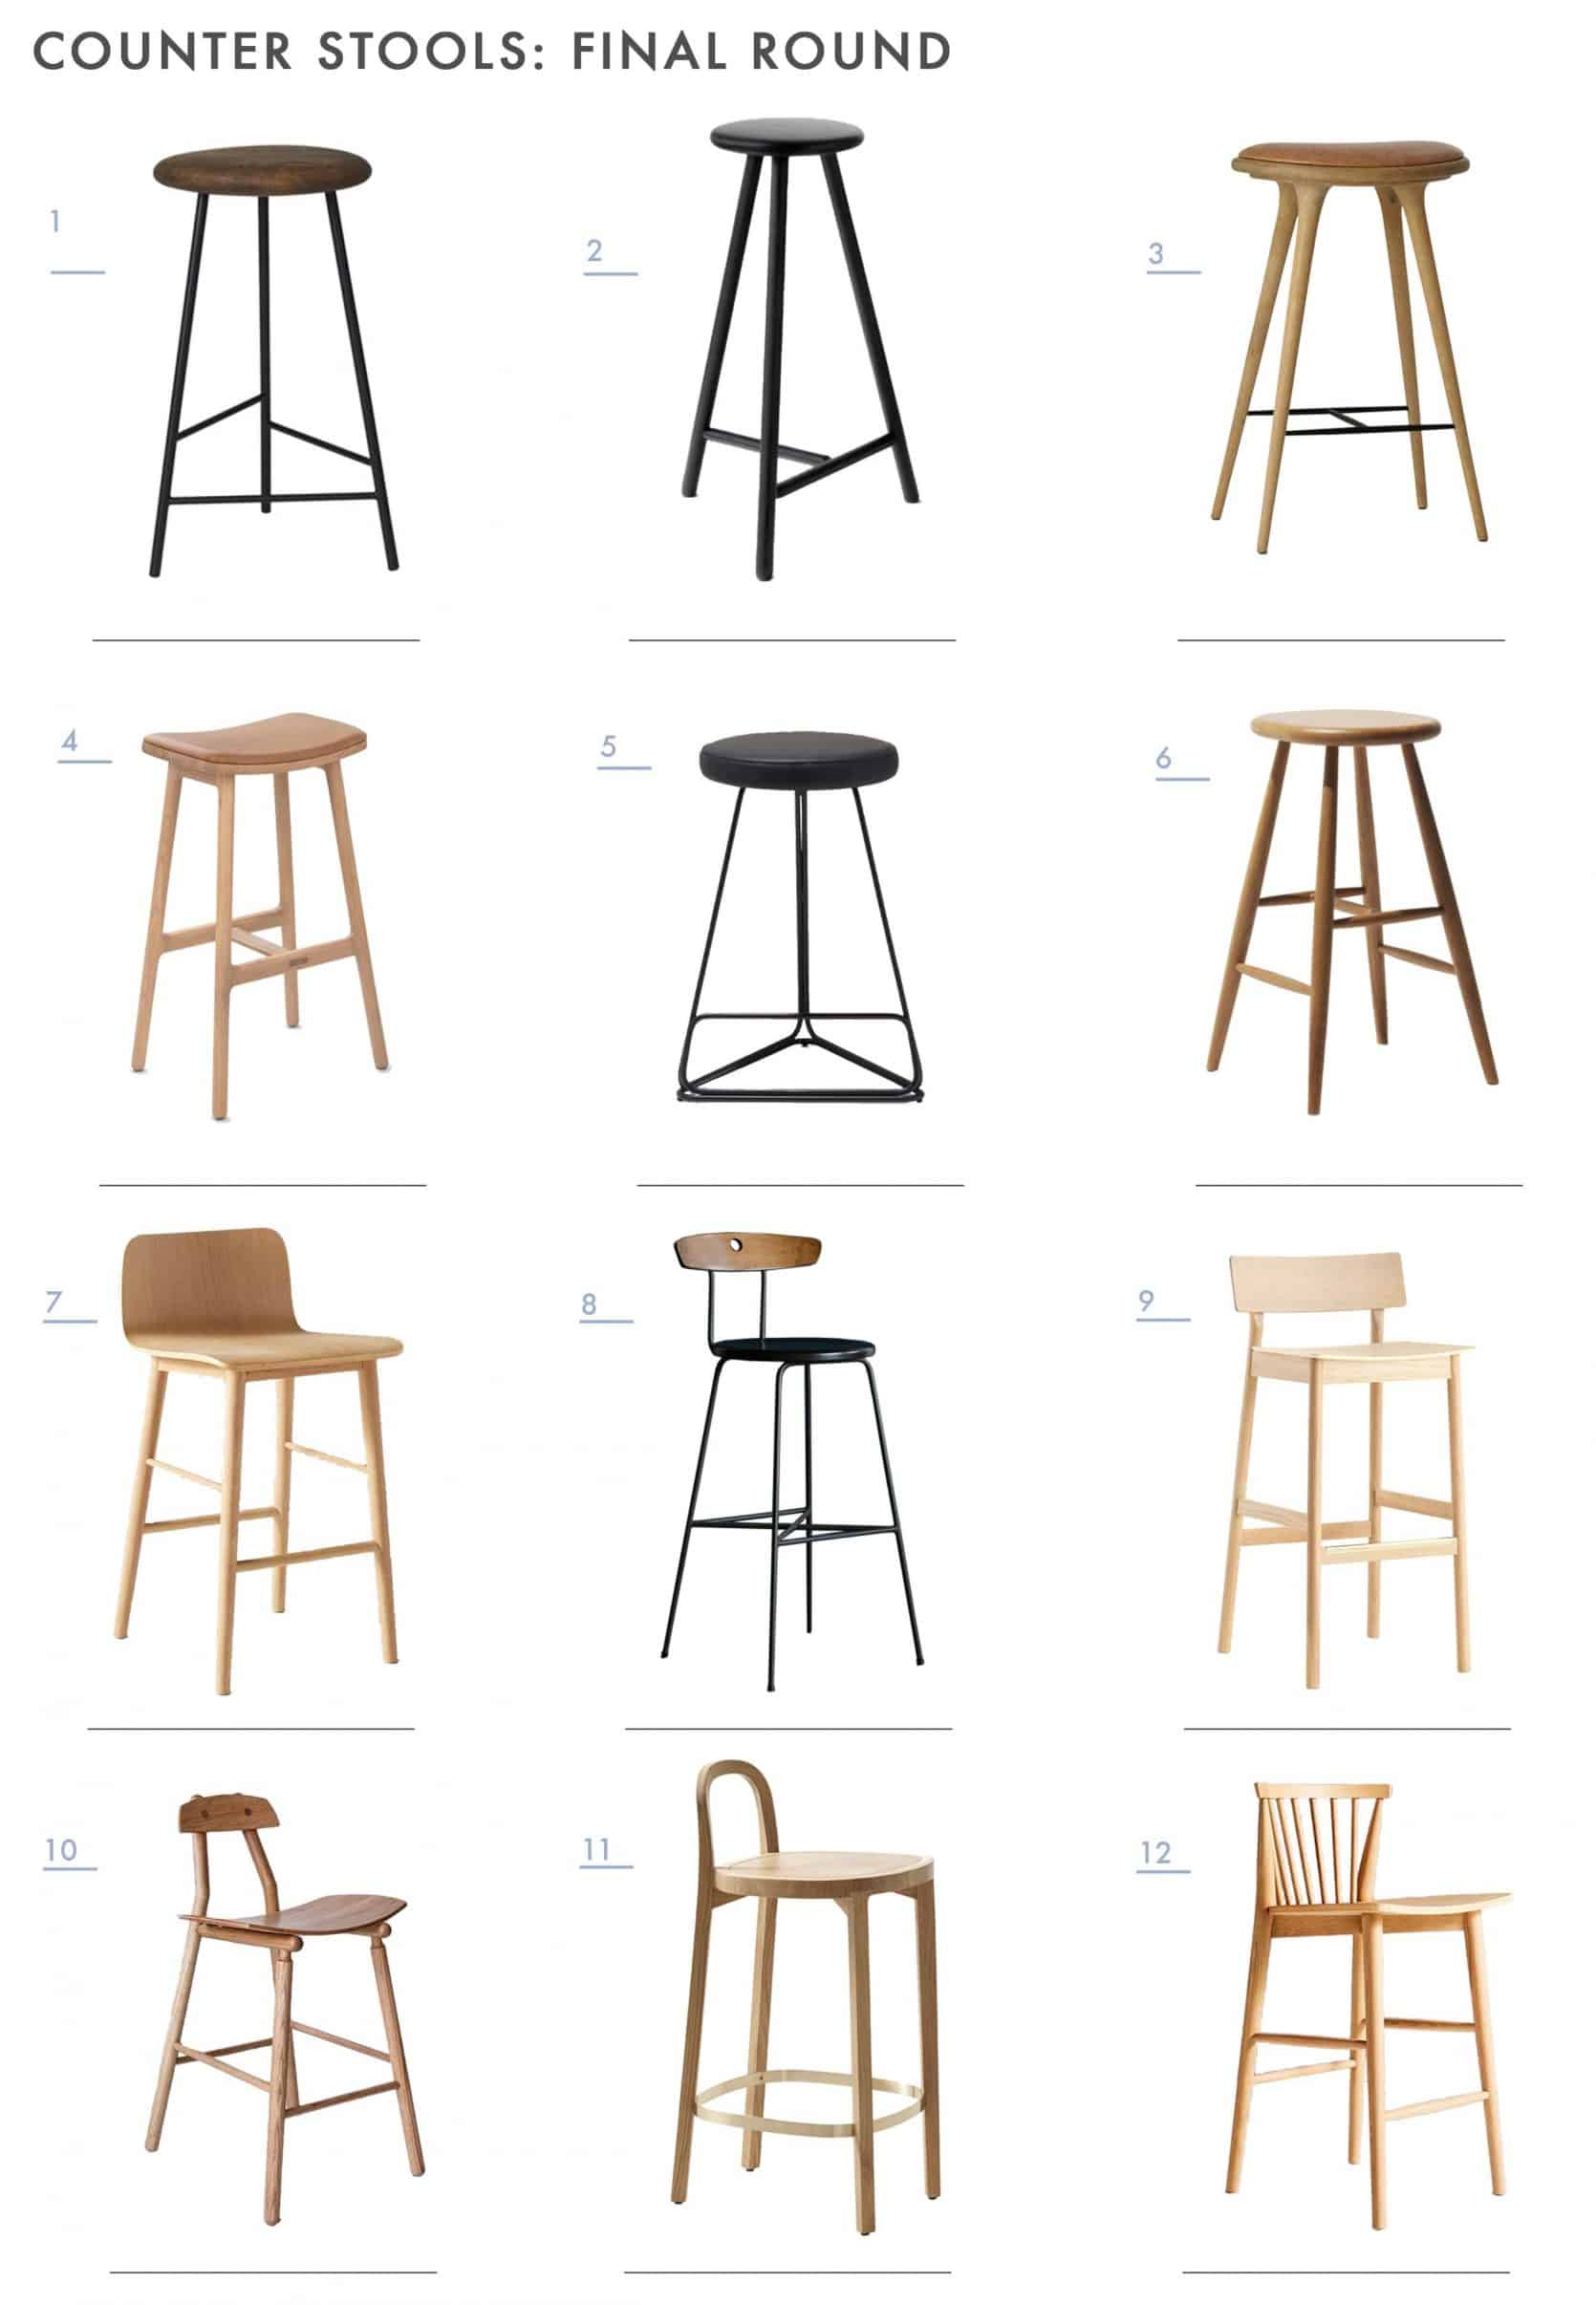 Emily Henderson Mountain Fixer Kitchen Counterstools Curated Mix Final Round 01